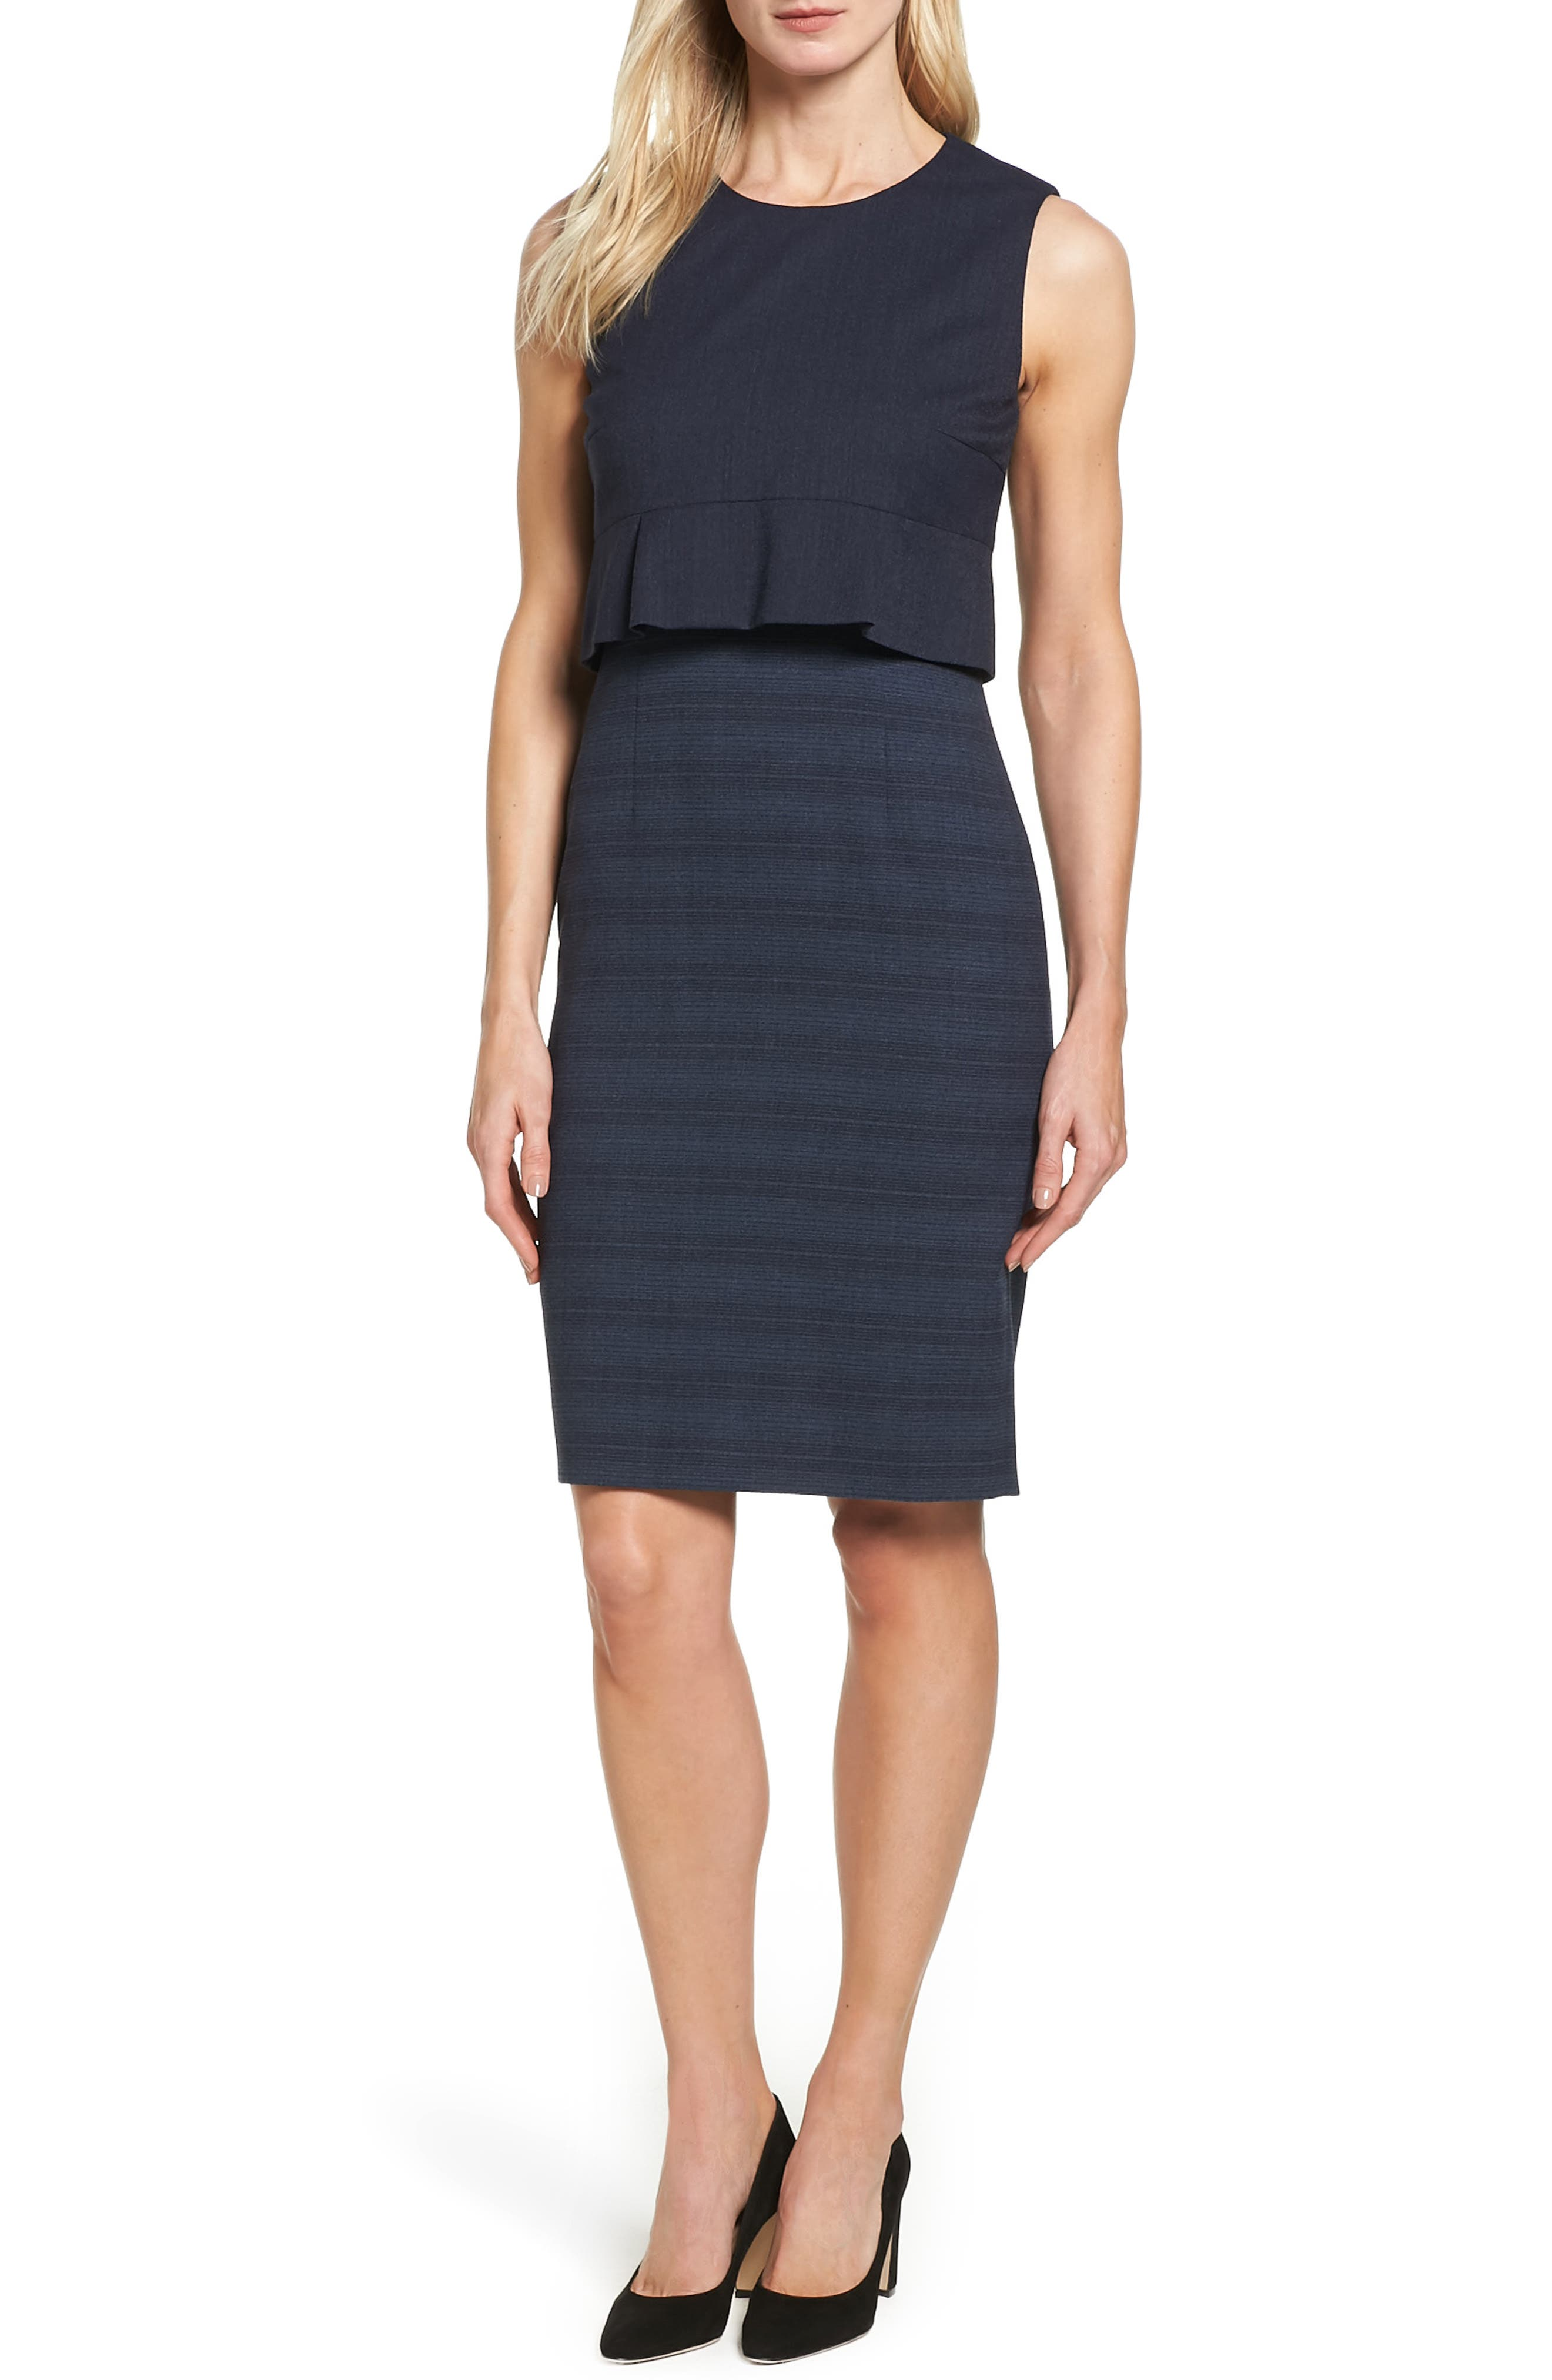 BOSS Dalera Popover Sheath Dress (Regular & Petite)